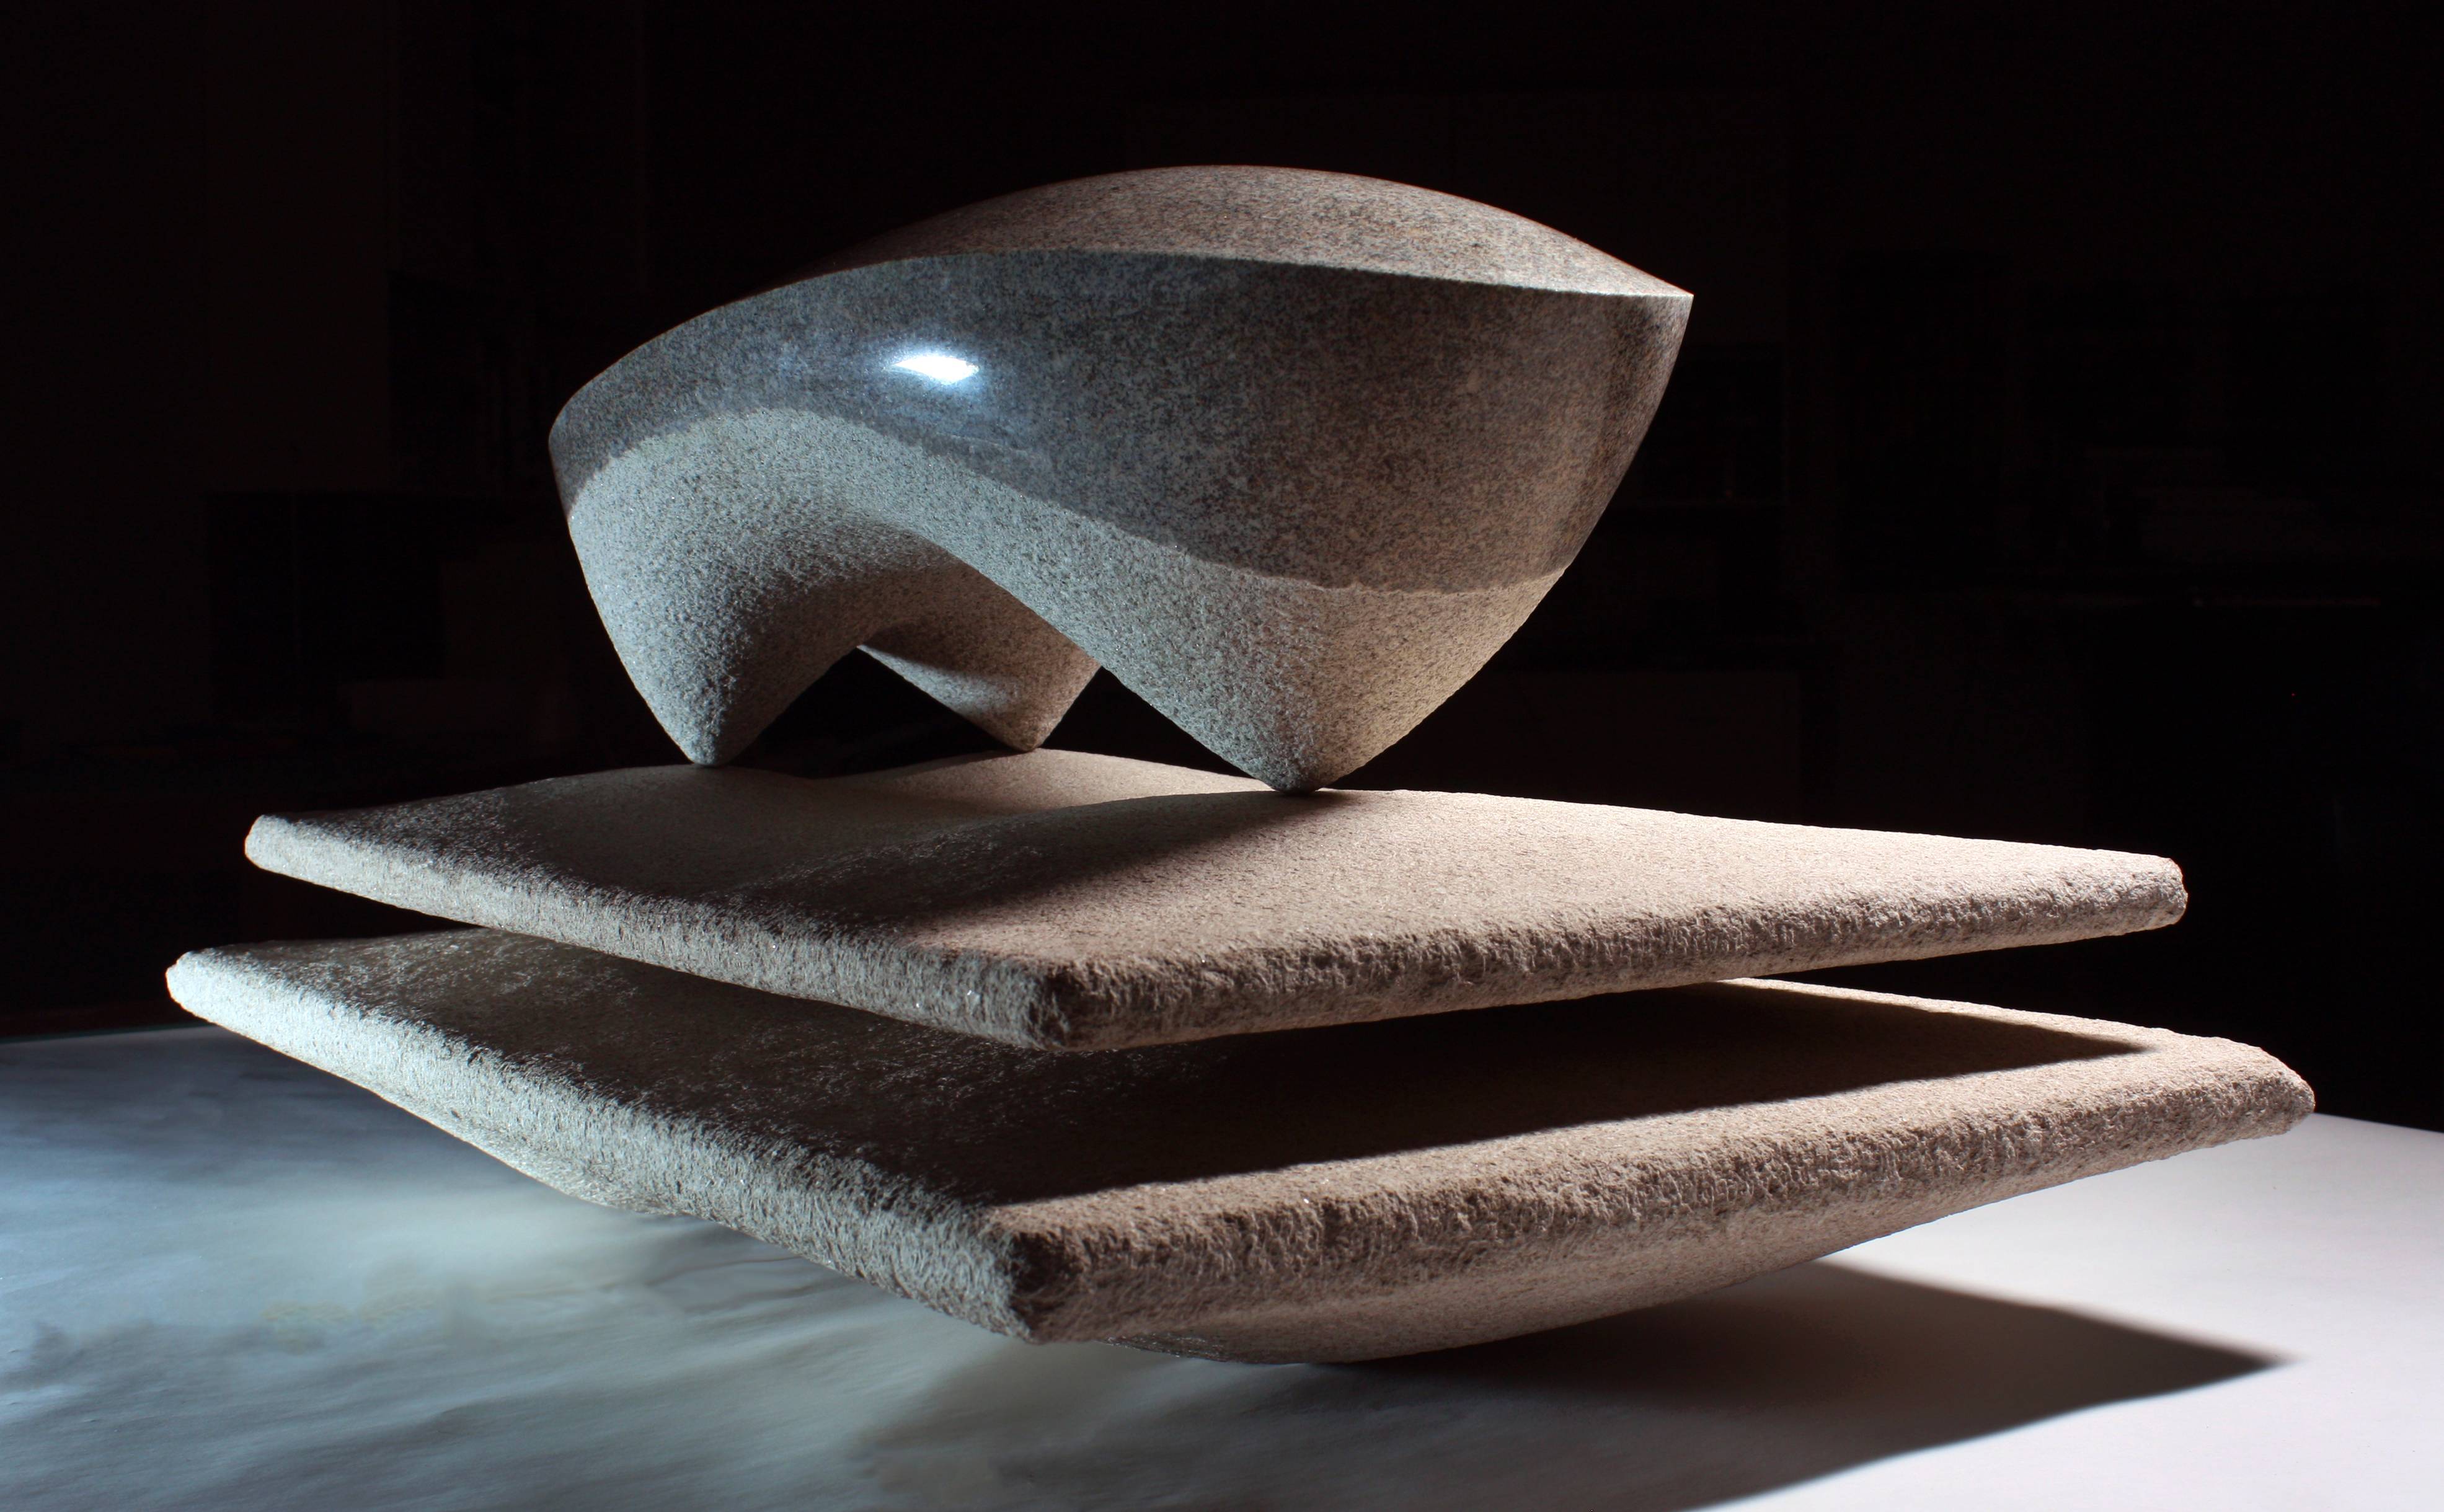 'Altar and Sacrifice' - 2012 - 17 x 26 x 13 Inches - Granite on Indiana Limestone